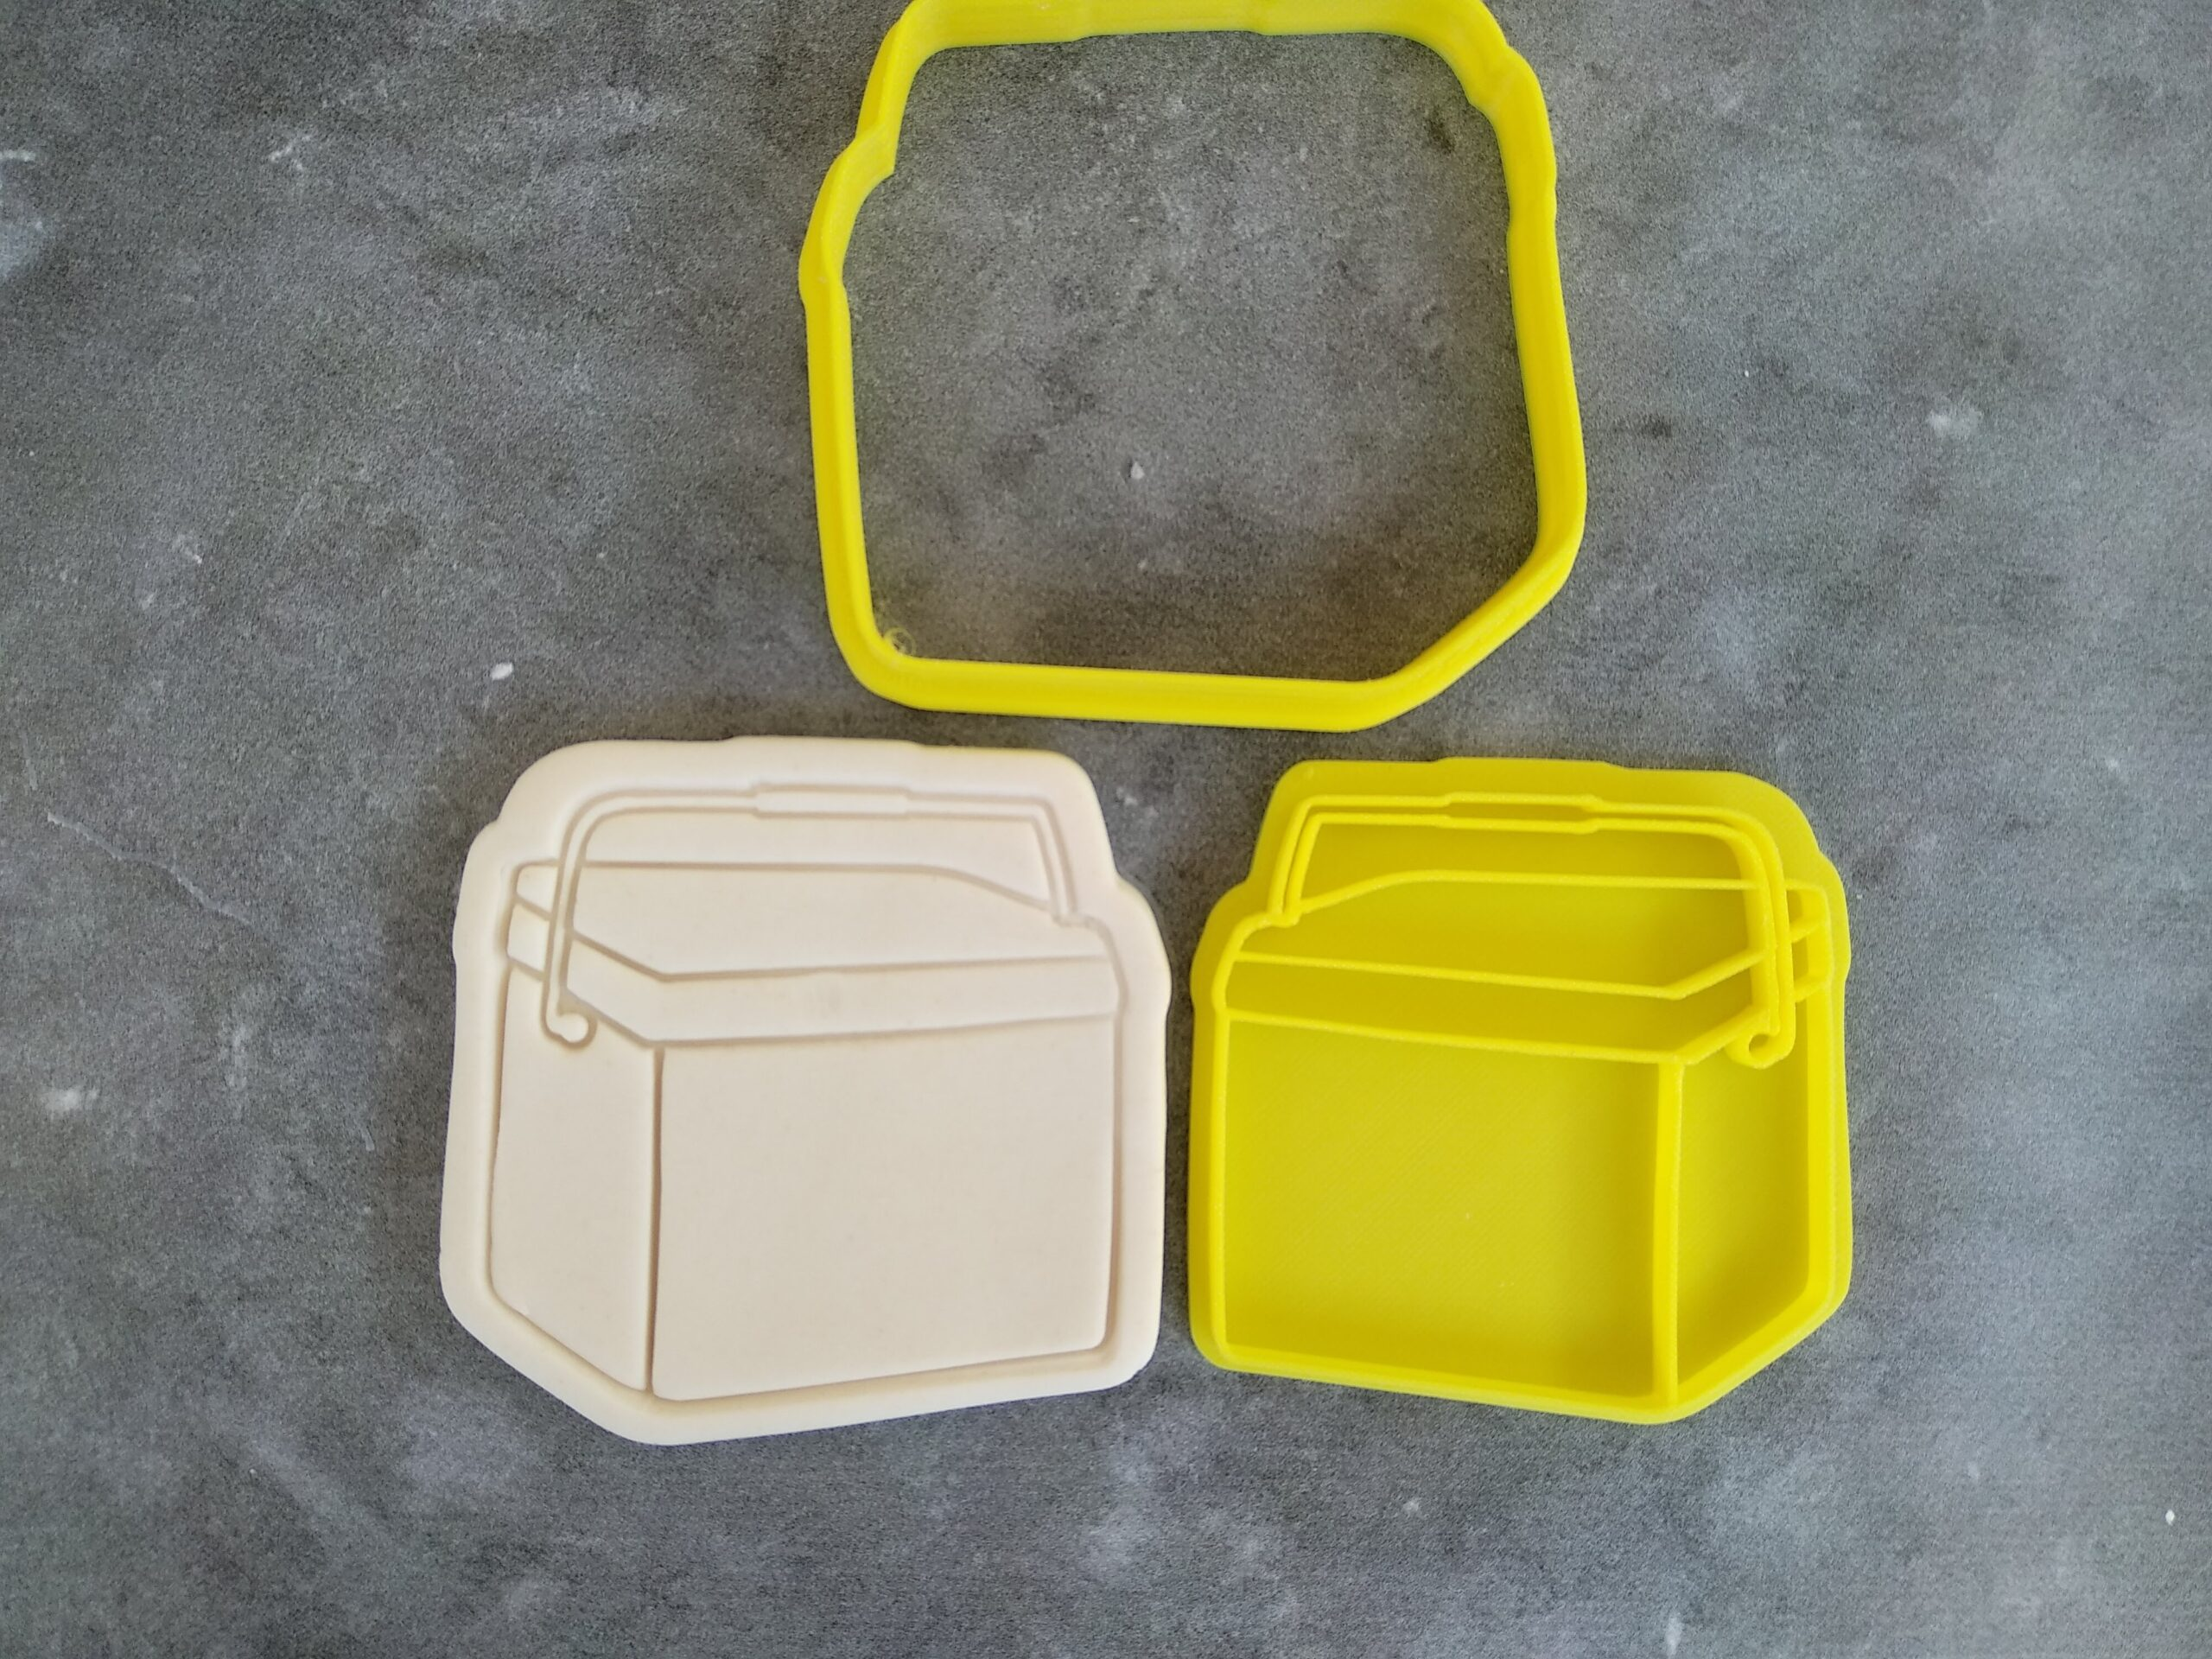 Esky Cookie Cutter and Fondant Stamp Embosser Australia Day Chilly Bin Ice Box Cooler Box